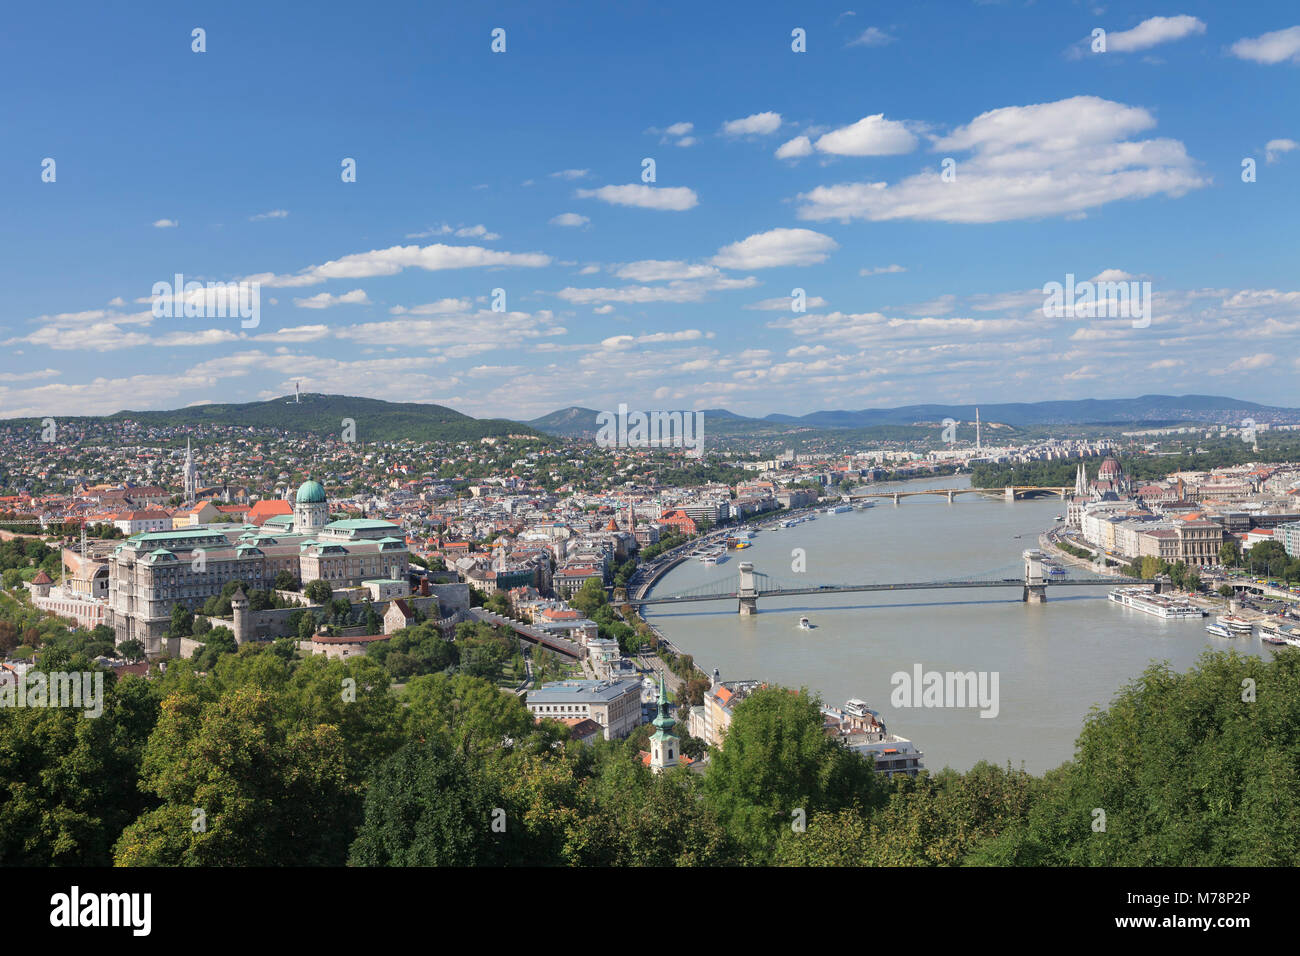 View from Gellert Hill to Buda Castle, Danube River and Parliament, Budapest, Hungary, Europe - Stock Image